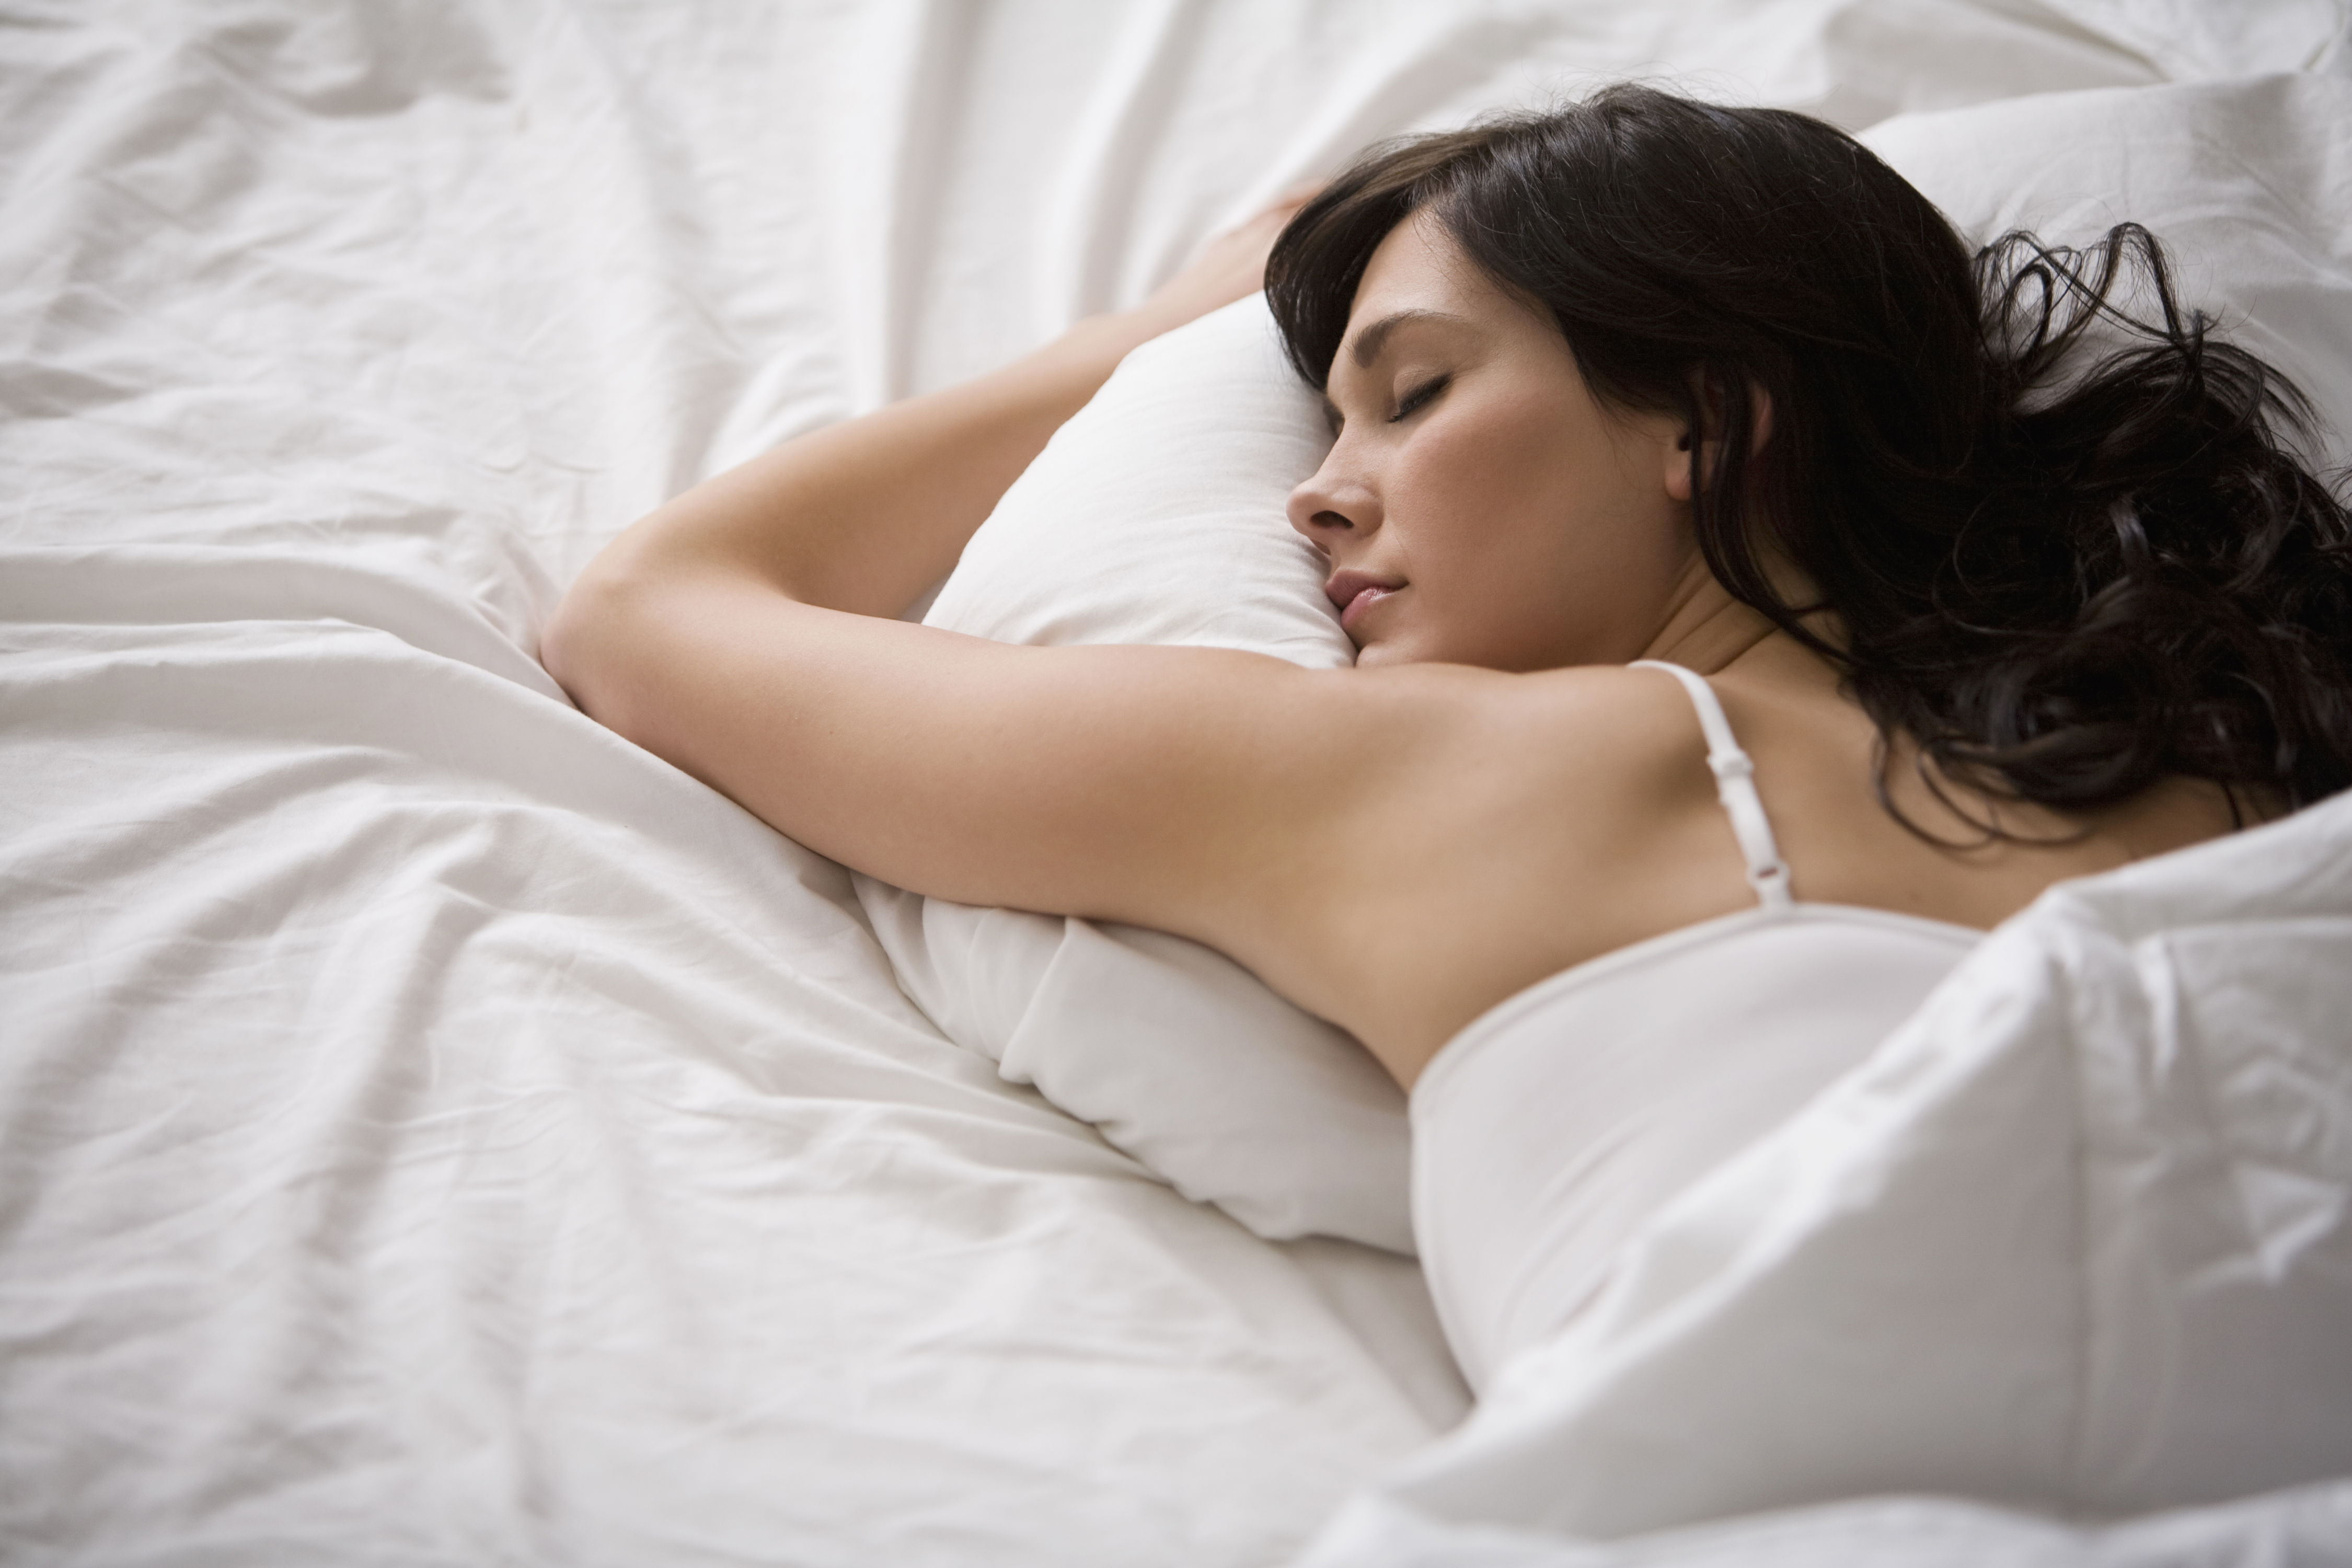 WATCH: This Is the Best Temperature for Sleep, According to a Sleep Doctor